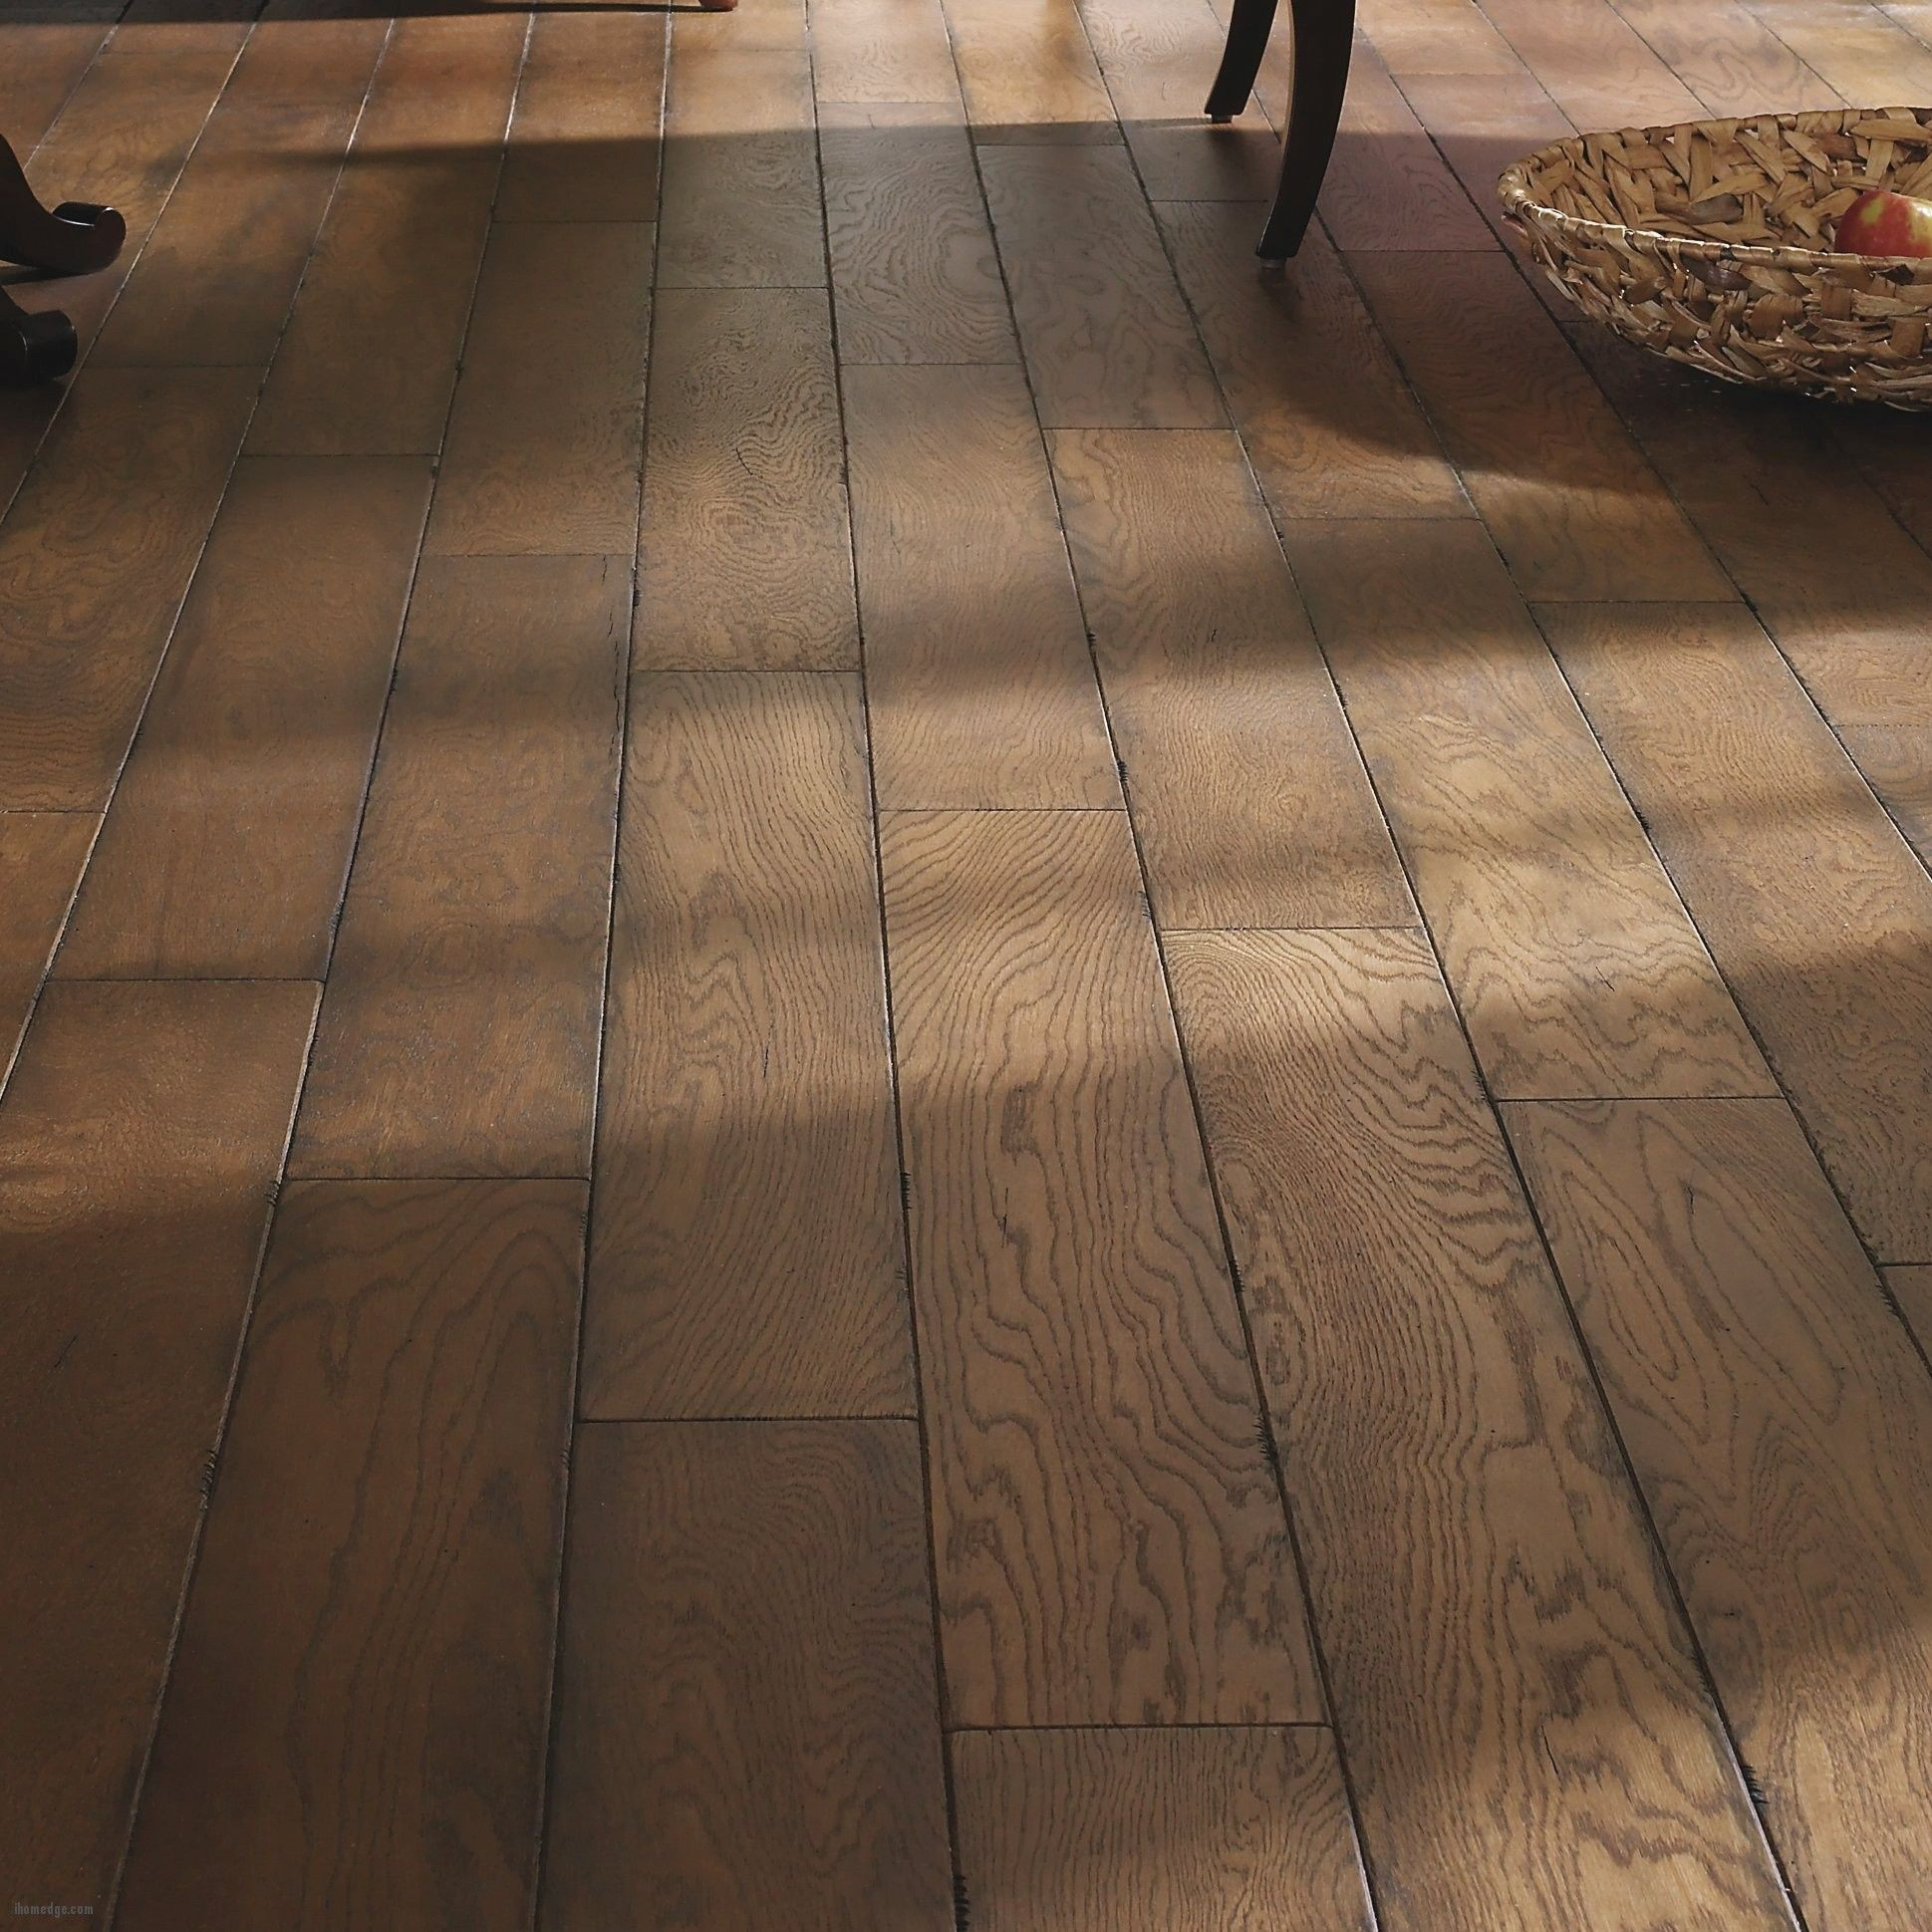 unfinished hardwood flooring near me of cool lovely white oak hardwood flooring easoon usa 5 engineered for cool lovely white oak hardwood flooring easoon usa 5 engineered white oak hardwood flooring in ar unfinished quarter sawn red vs caledonian bruce floors